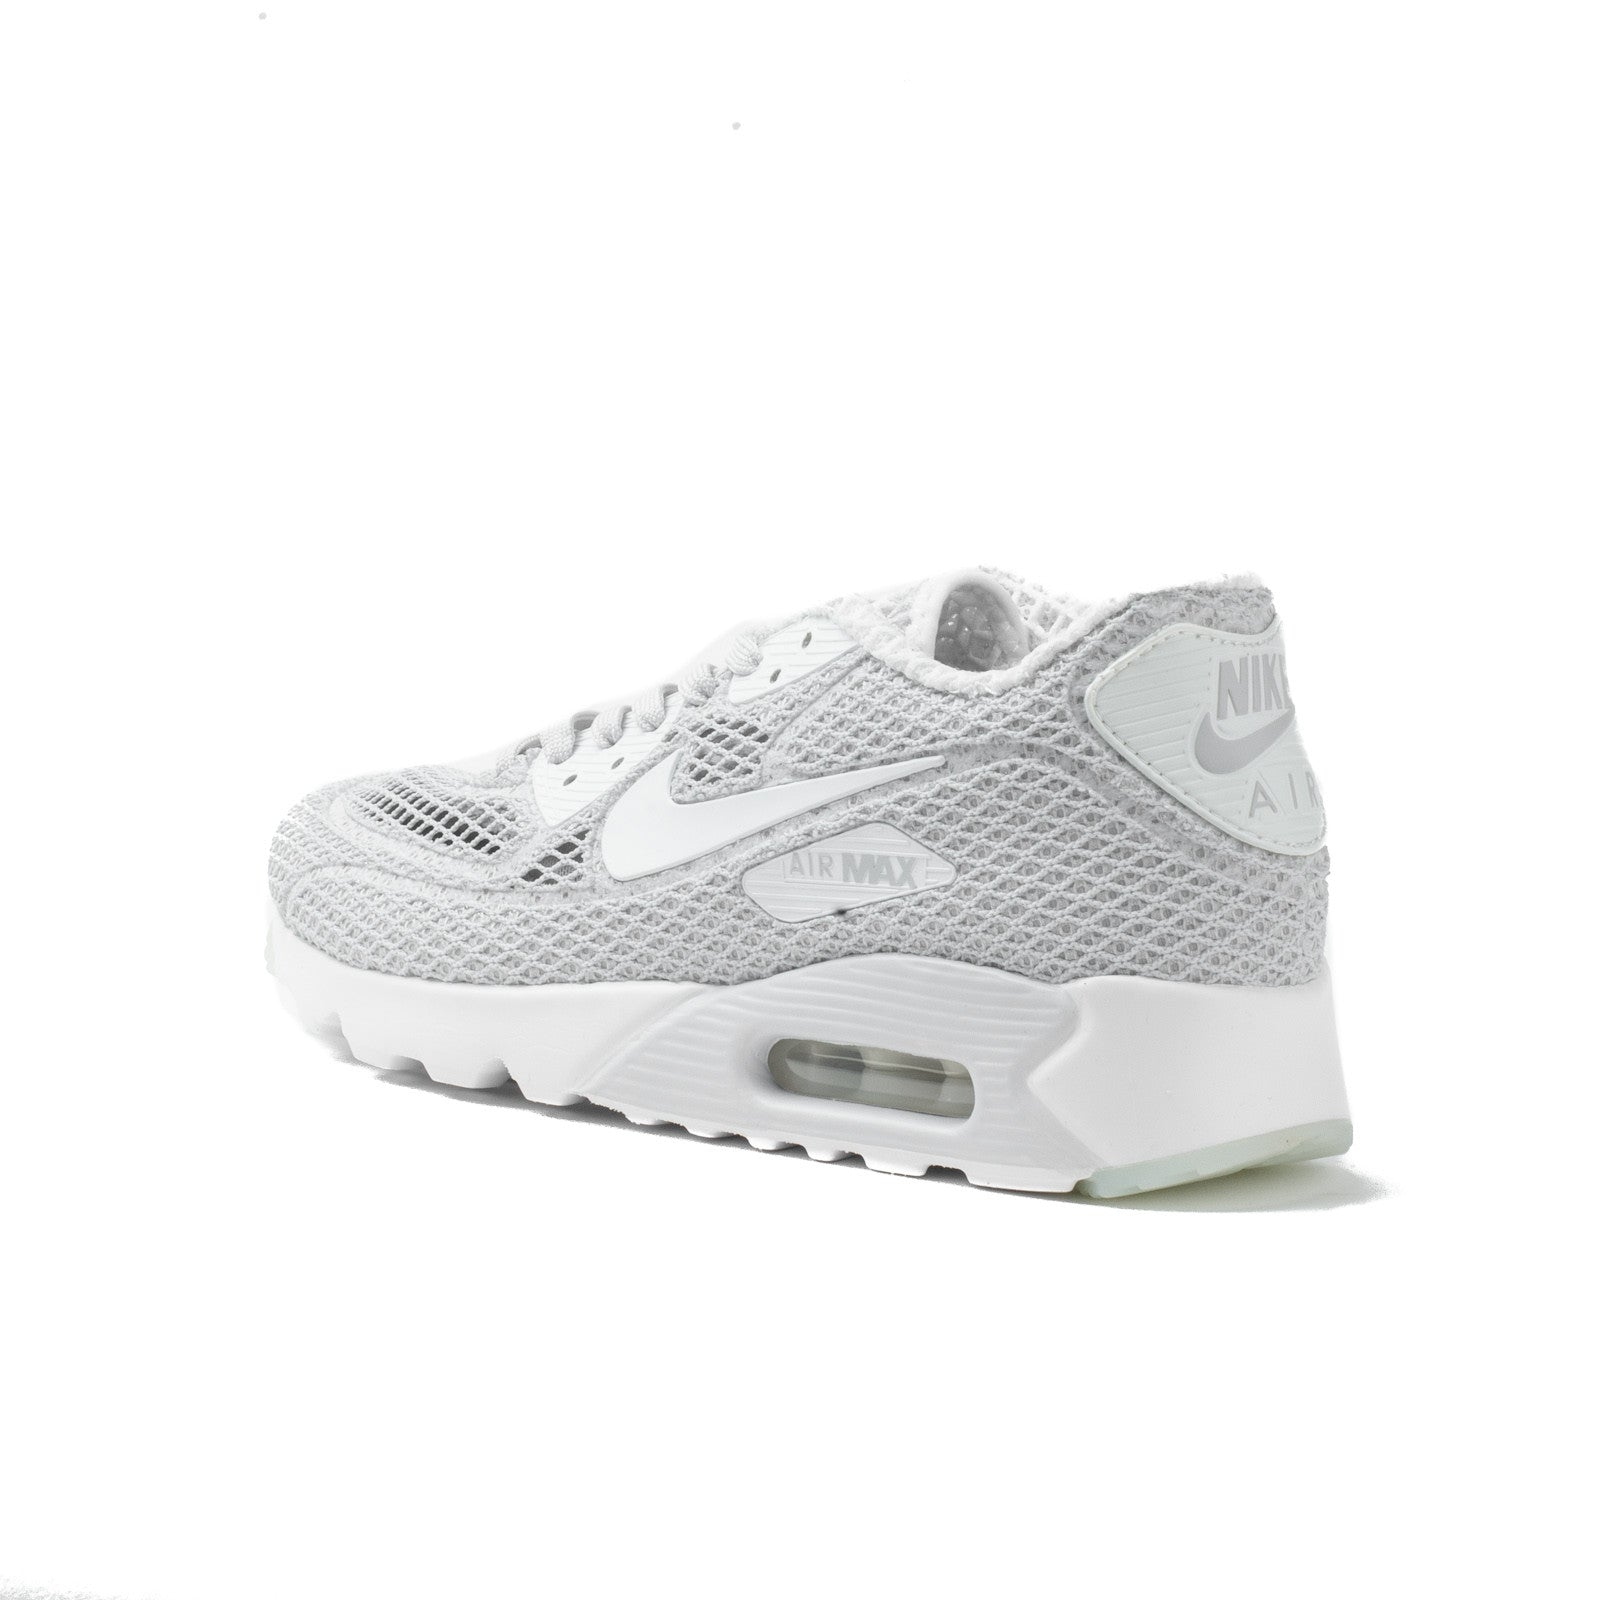 Air Max 90 Ultra BR Plus QS 810170-001